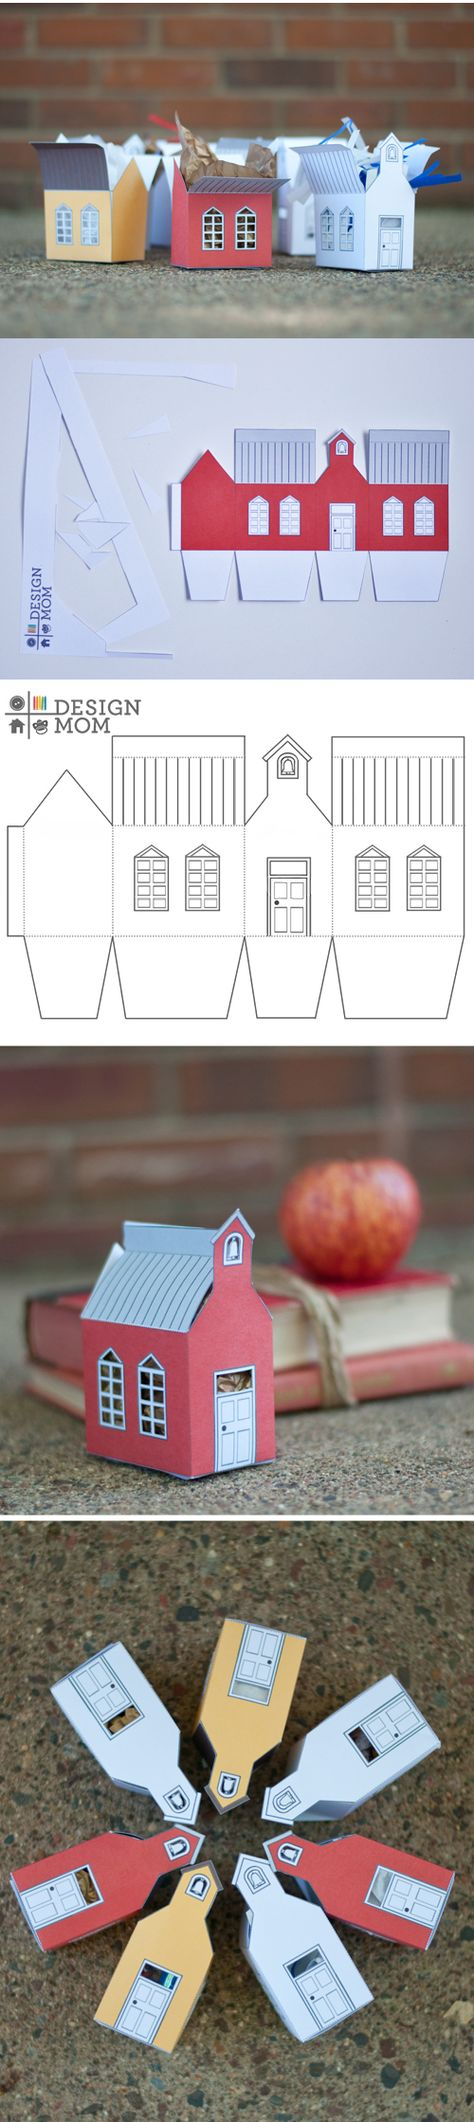 Free printable School House Box templates (in white yellow and red) from Design Mom: www.designmom.com...